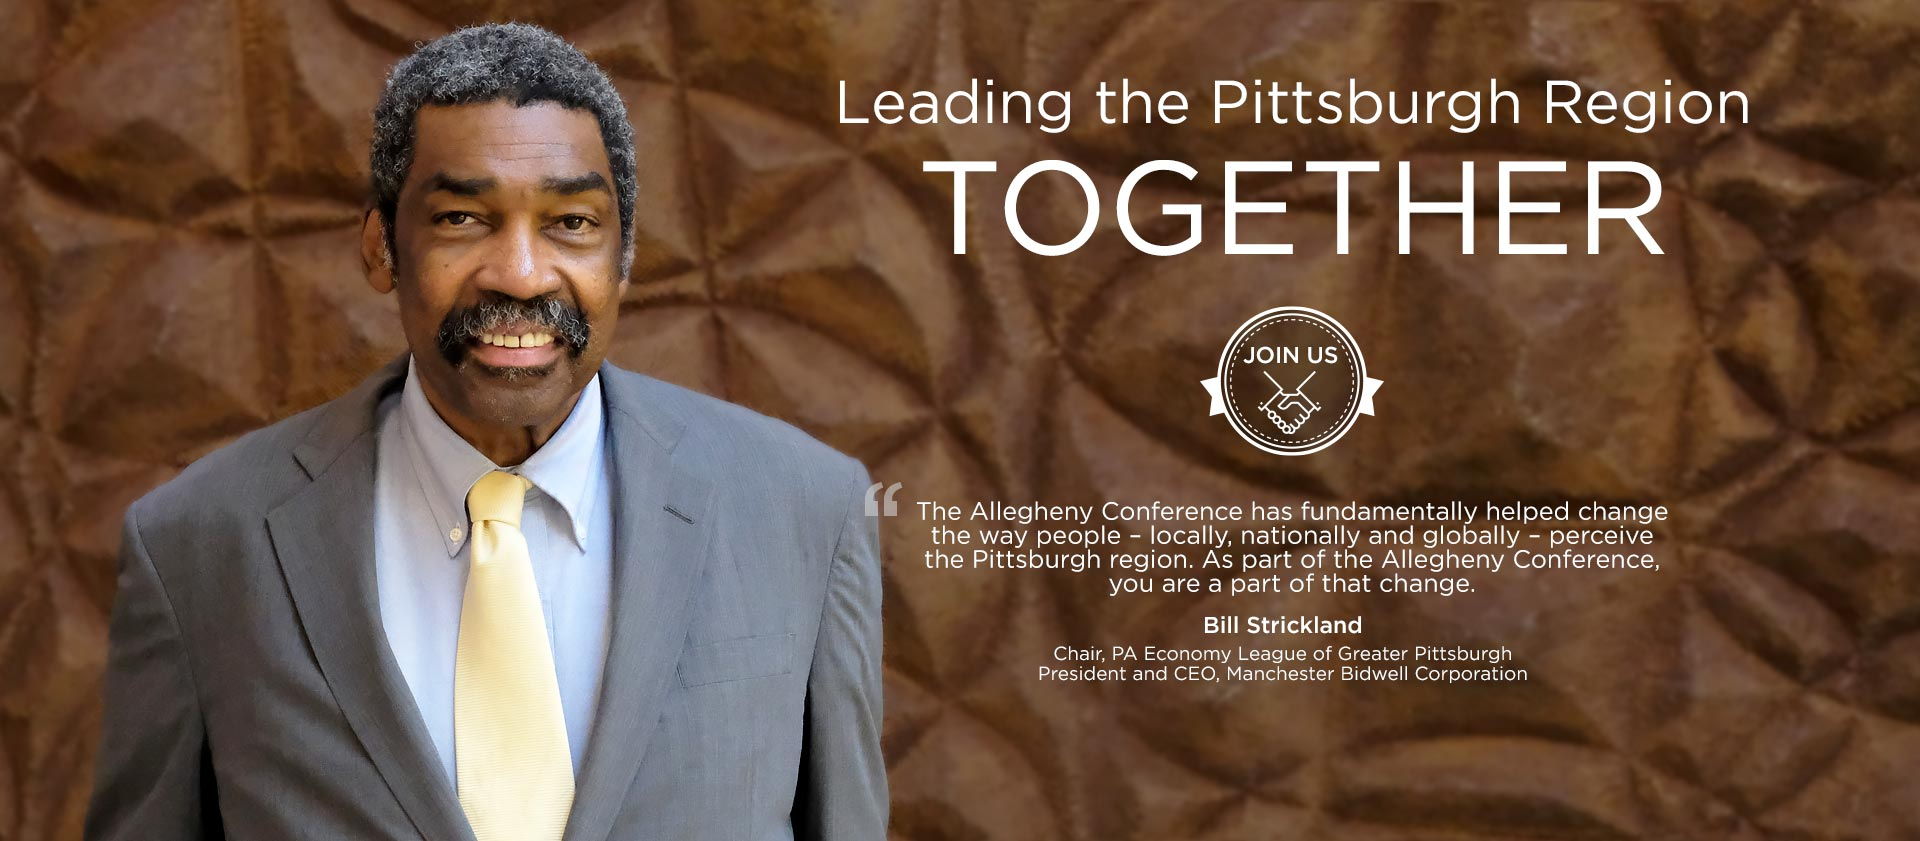 Bill Strickland – Chair, PA Economy League of Greater Pittsburgh – President and CEO, Manchester Bidwell Corporation